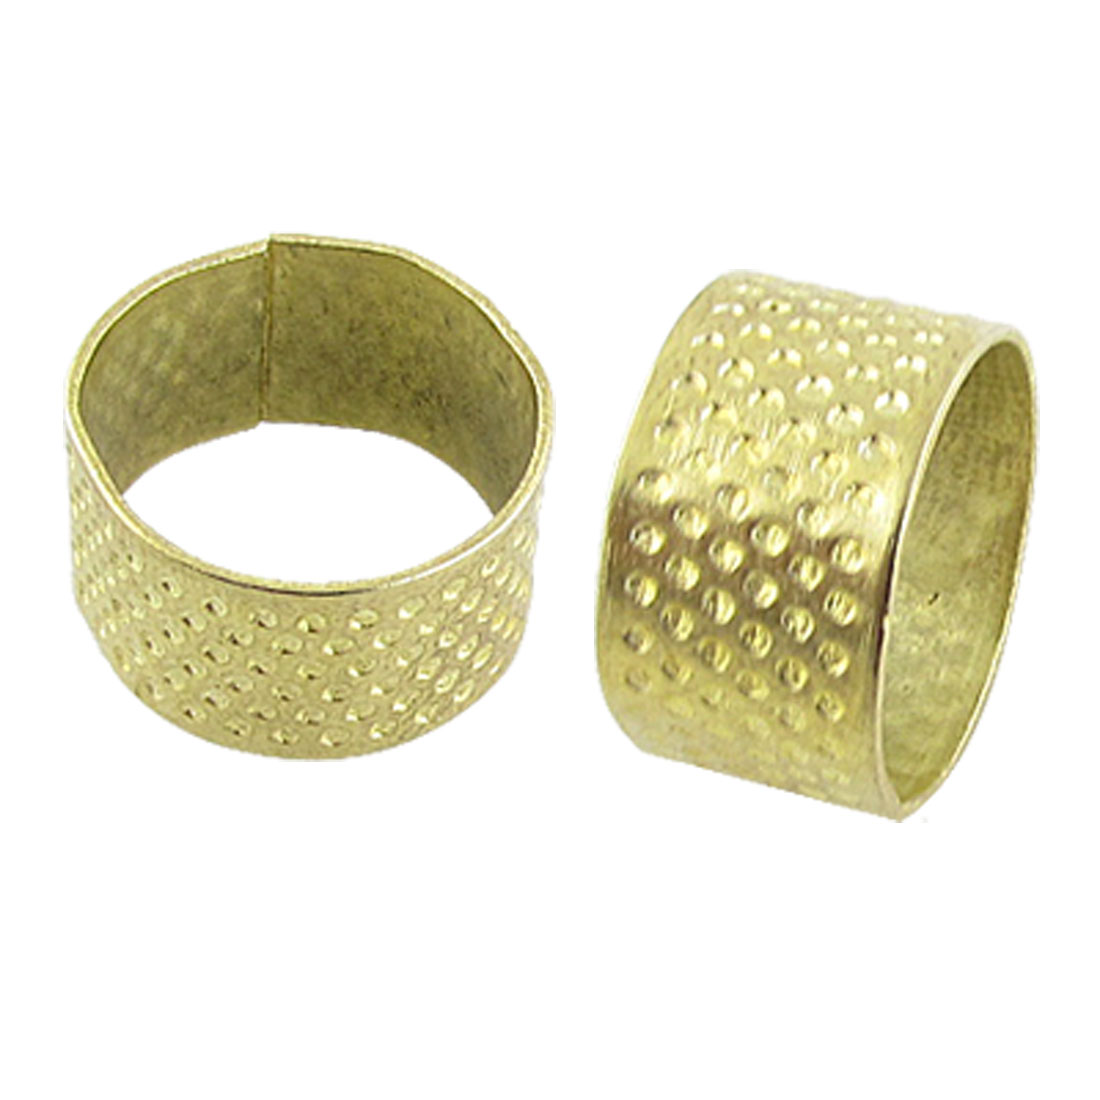 Gold Tone Open Top Tailors Sewing Metal Thimble 2 Pcs